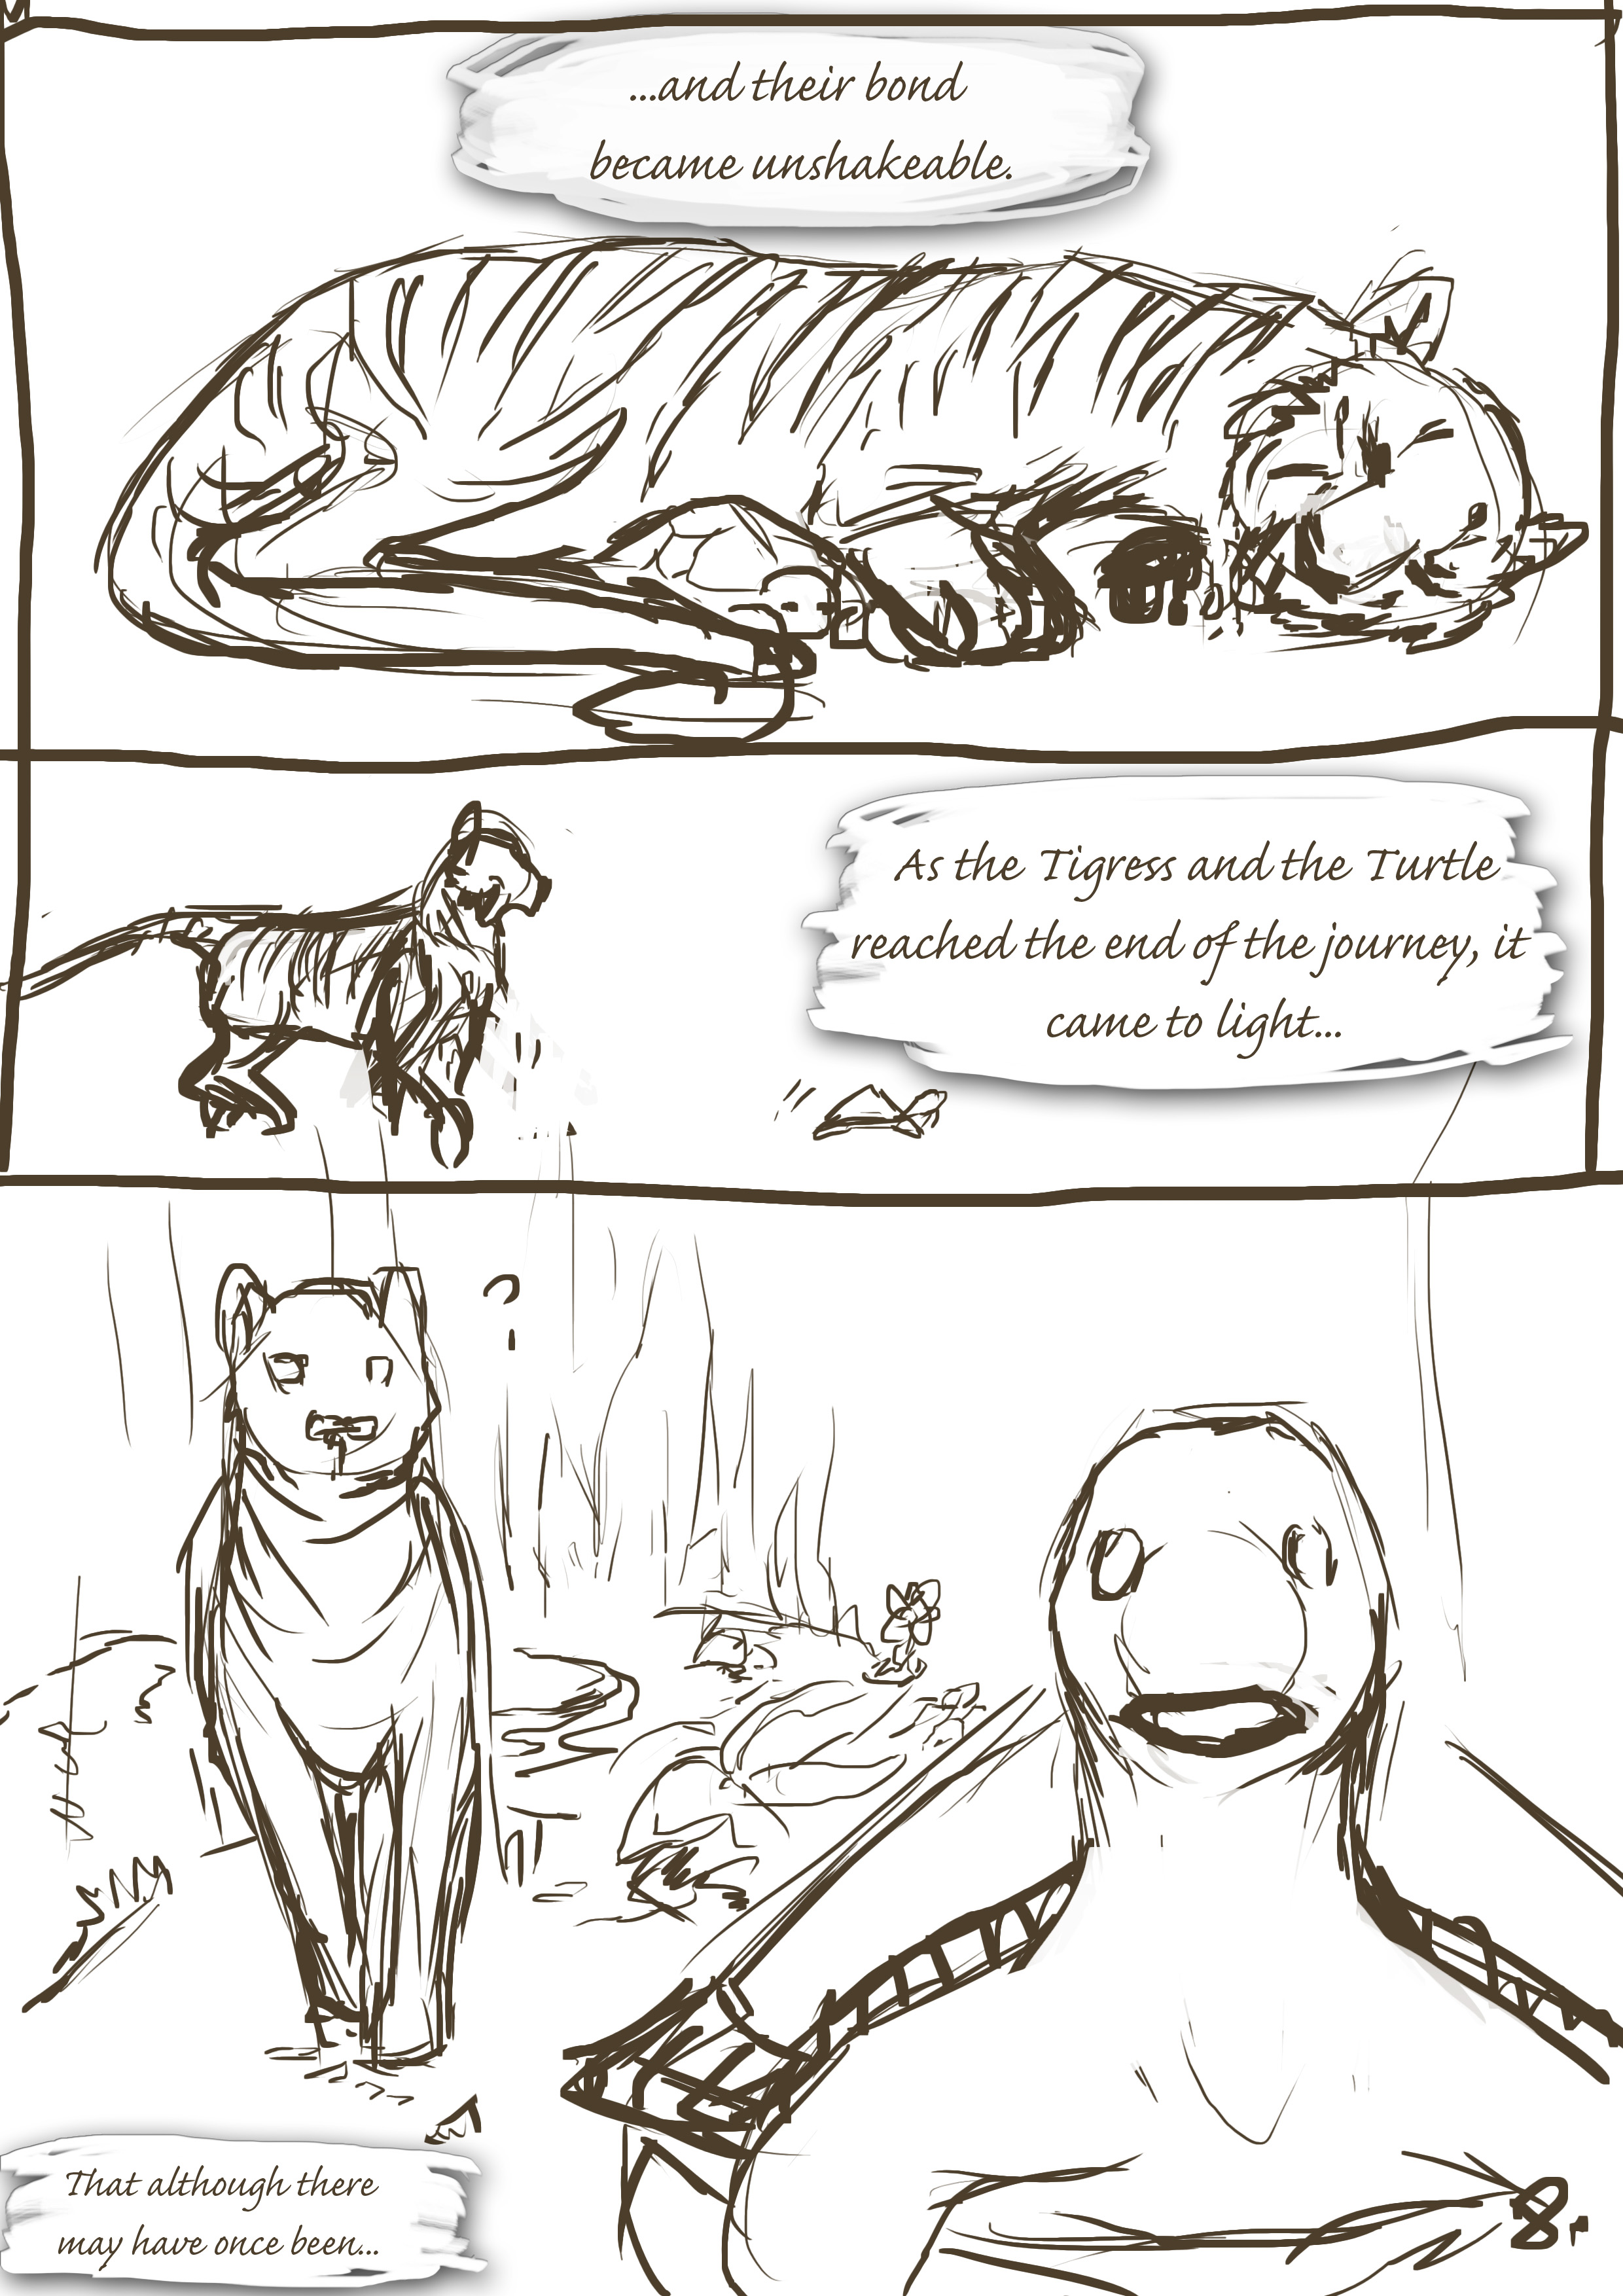 The Turtle and The Tigress 8